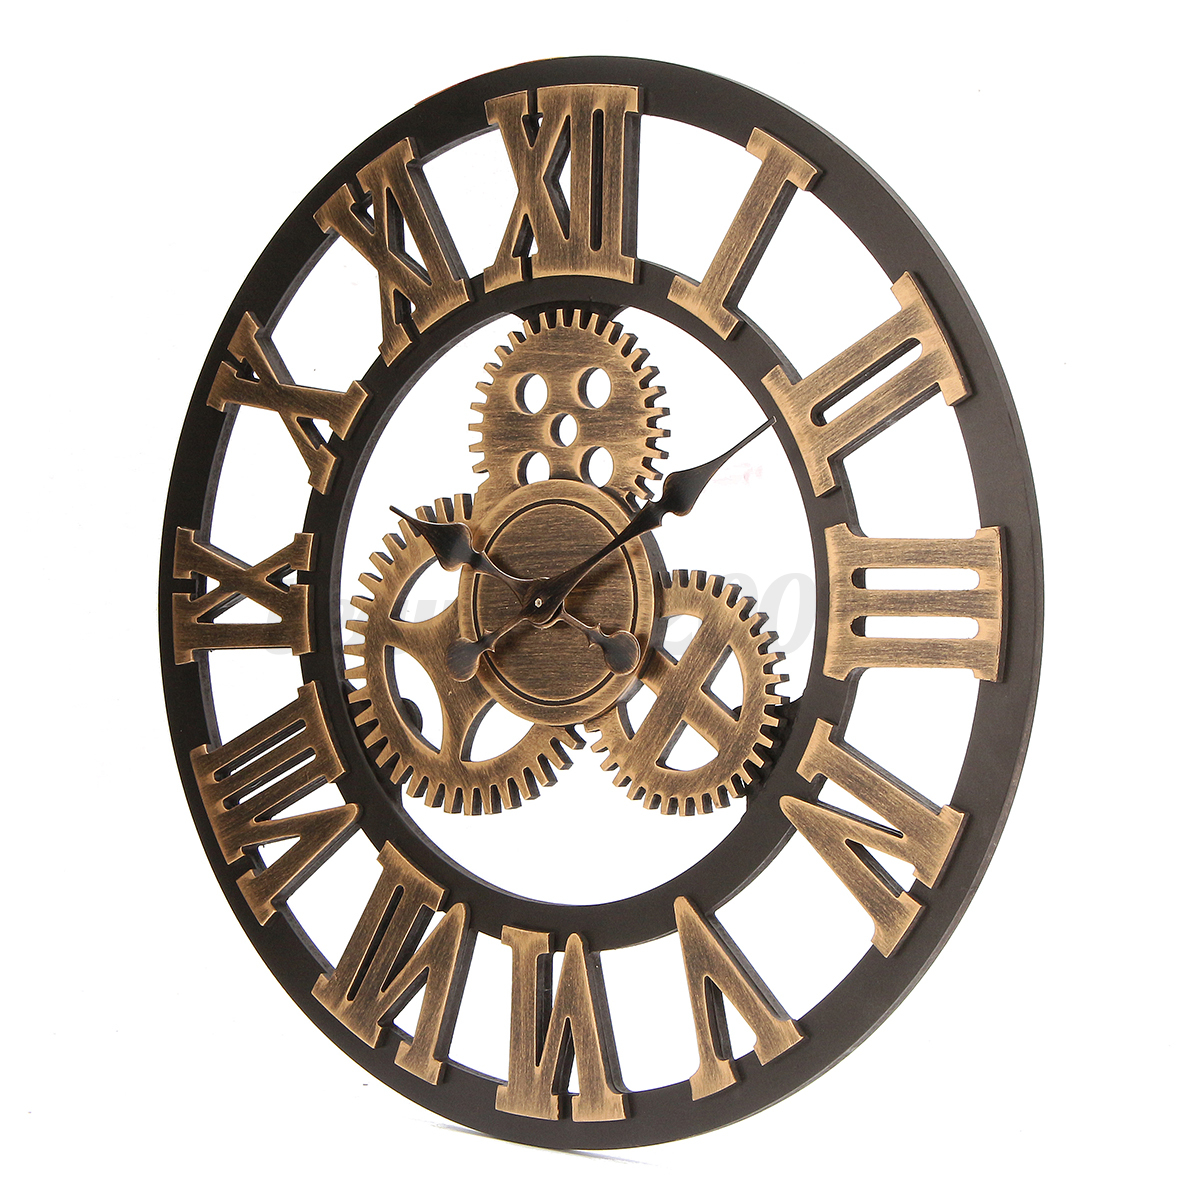 60cm oversized retro vintage large gear rustic wooden luxury wall clock decor ebay